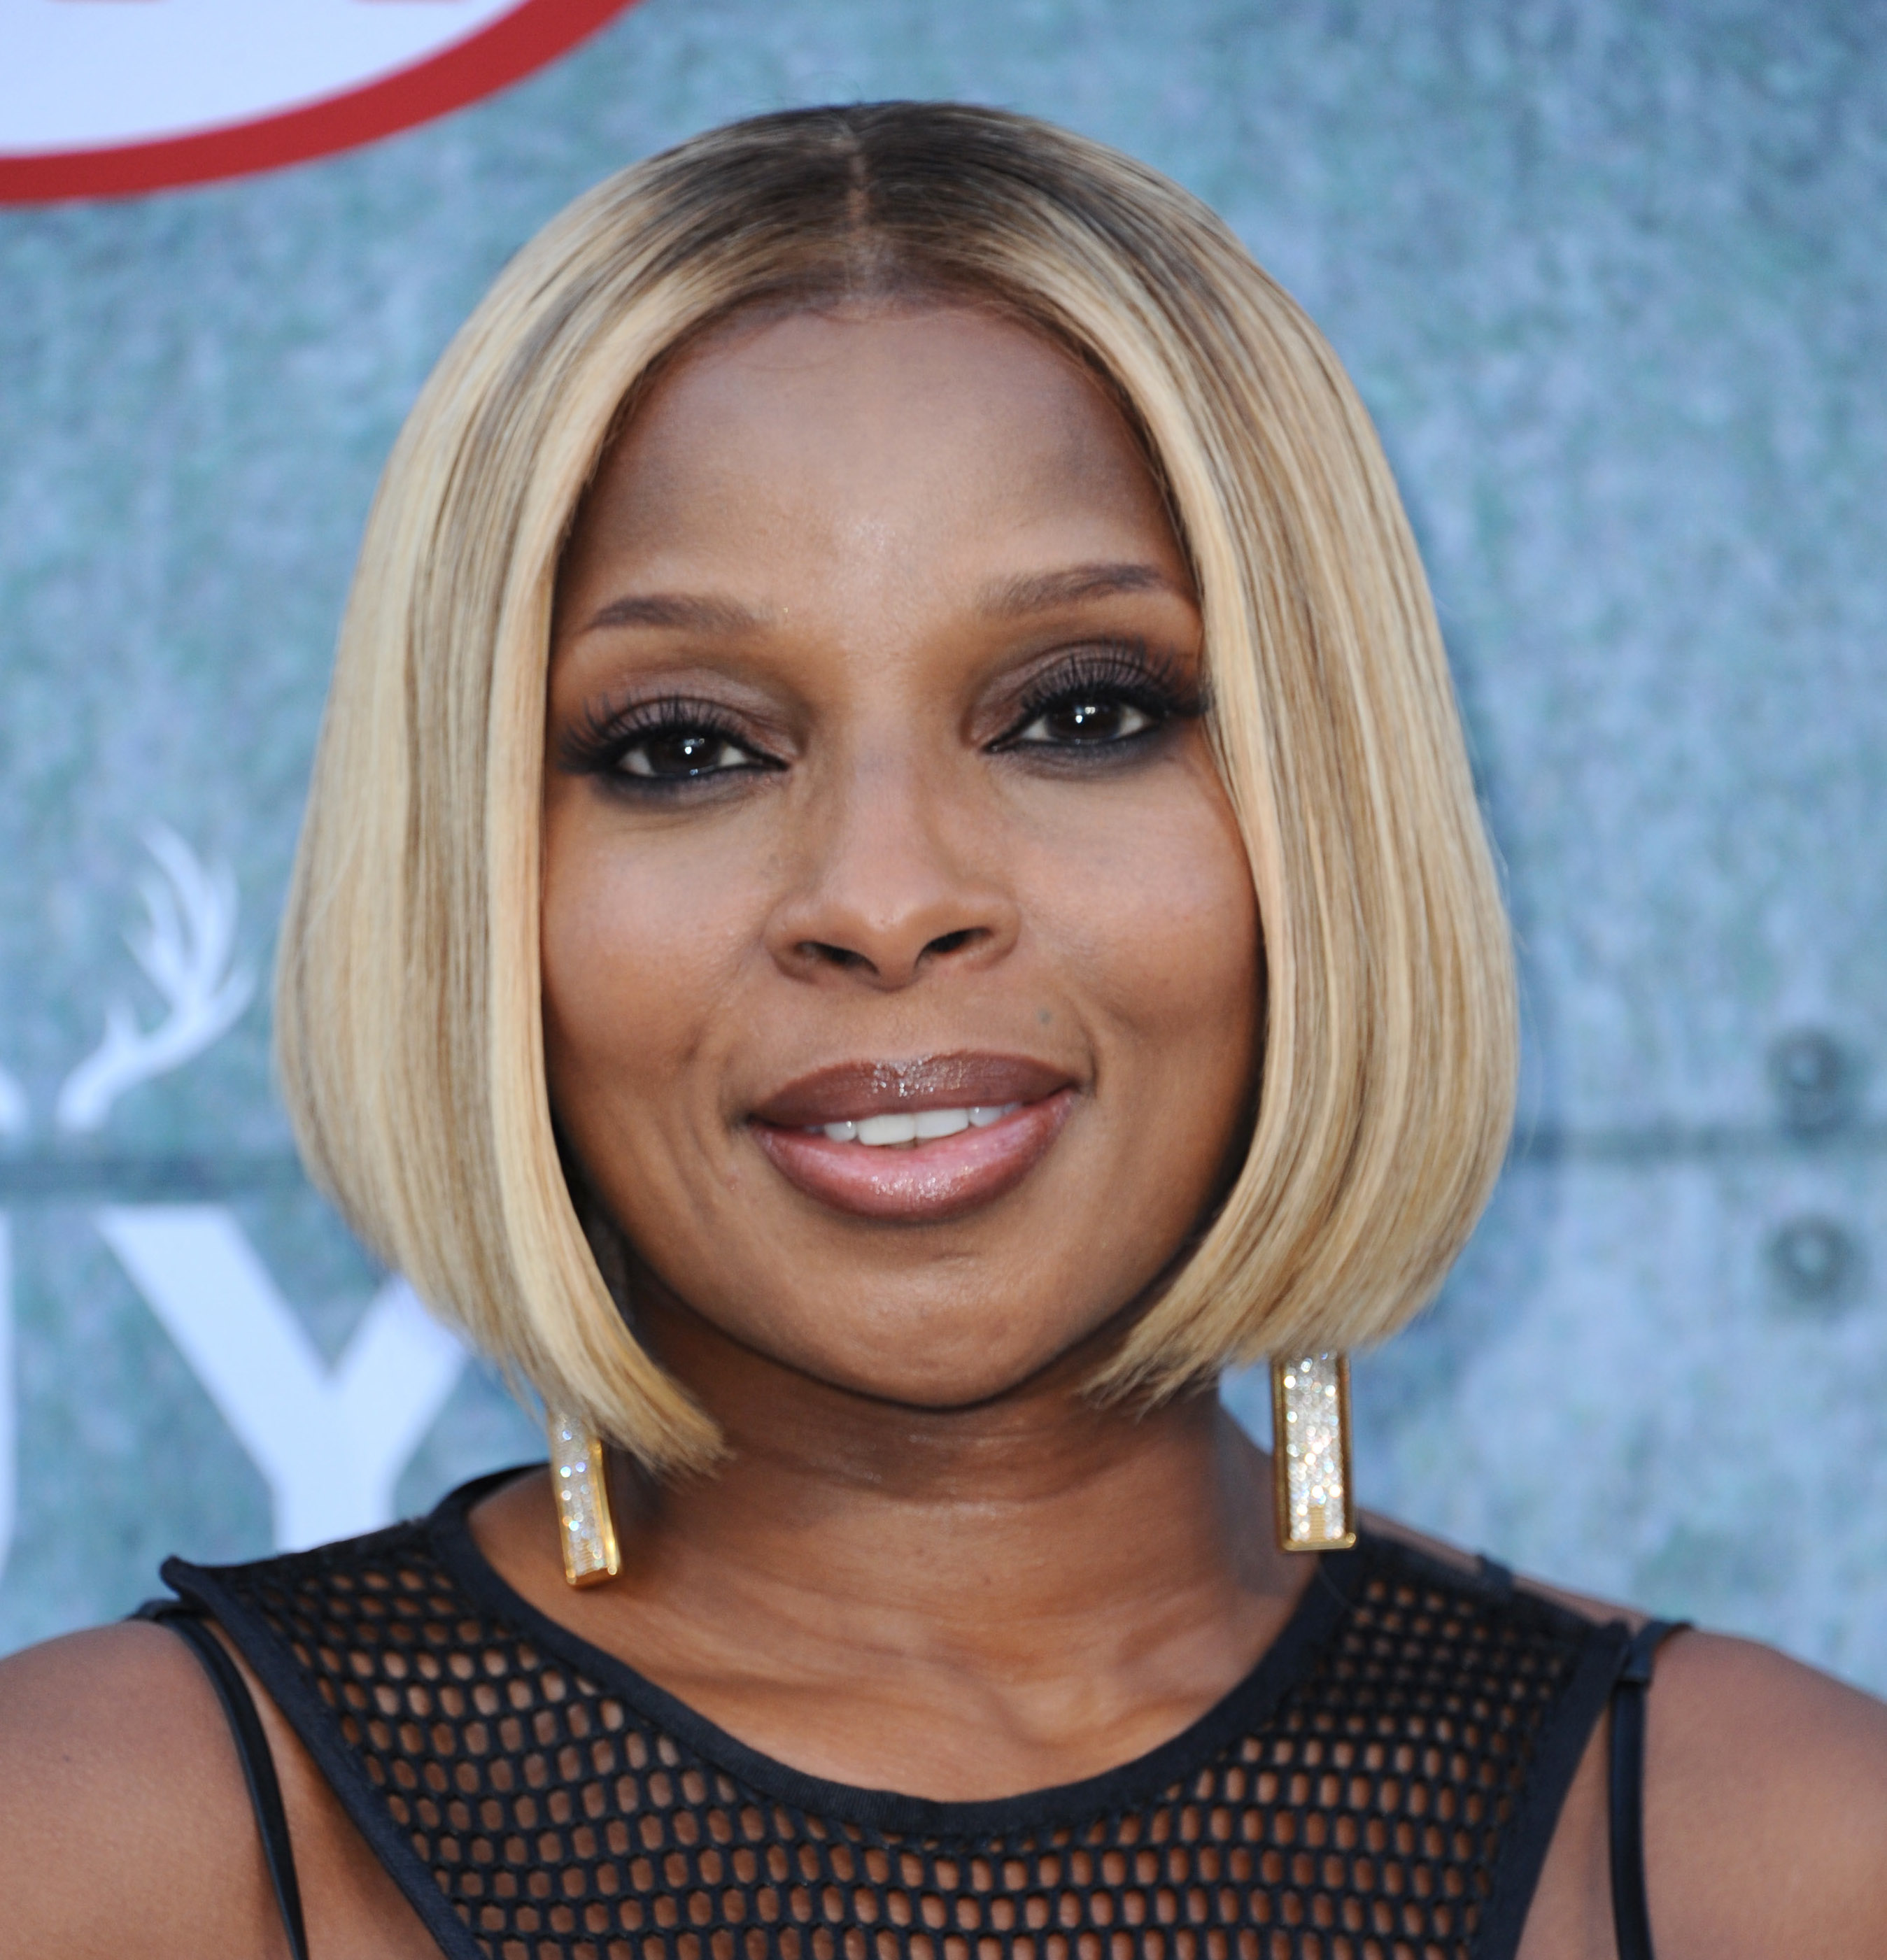 Mary J. Blige attends the 2015 Spike TV's Guys Choice Awards at Sony Studios on Saturday, June 6, 2015, in Culver City, Calif. (Photo by Richard Shotwell/Invision/AP)